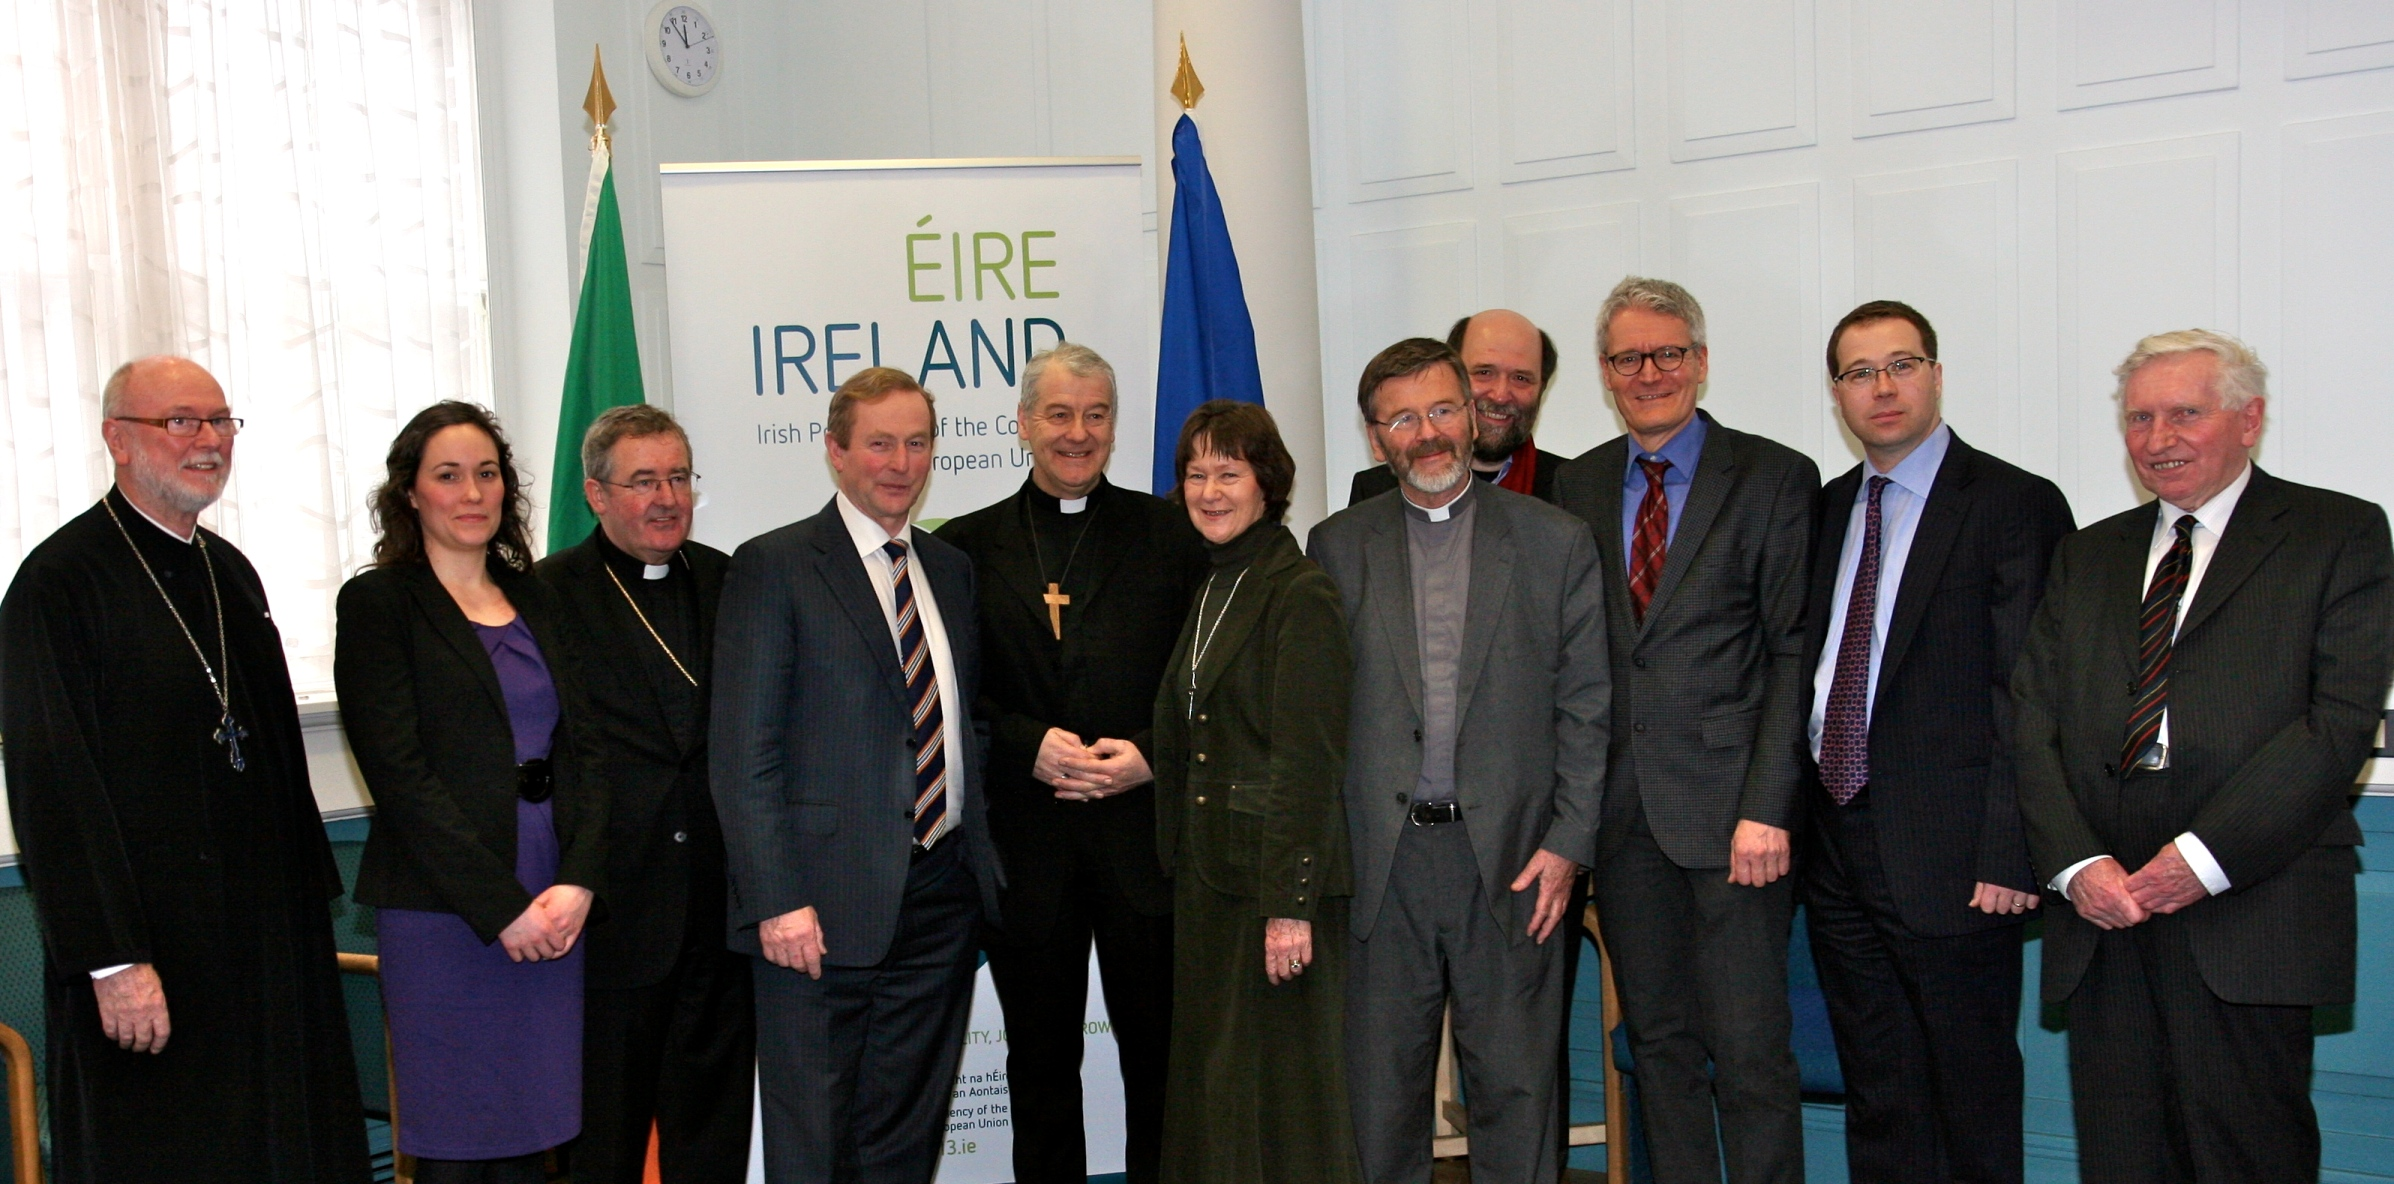 Irish and European Church Leaders with An Taoiseach